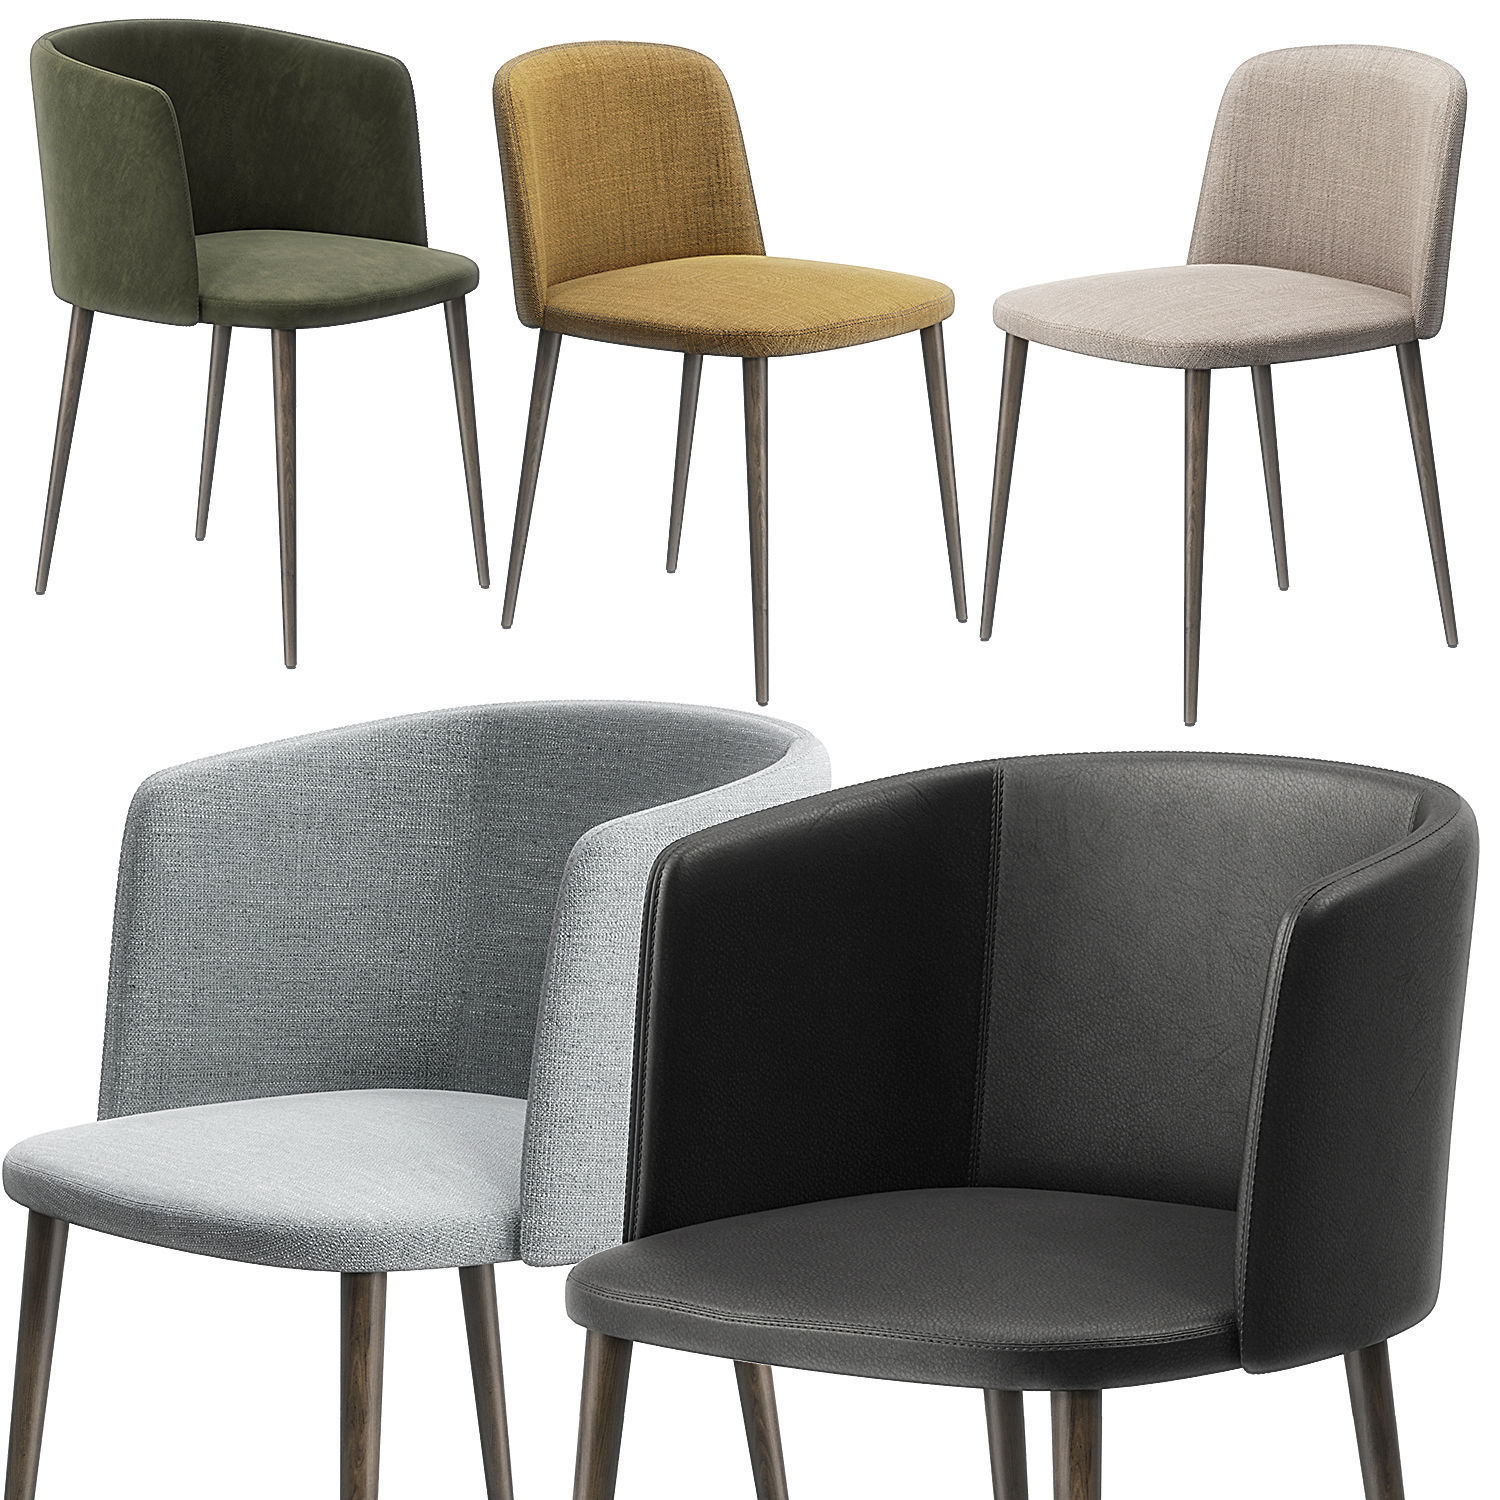 Ballet dining chairs by Camerich